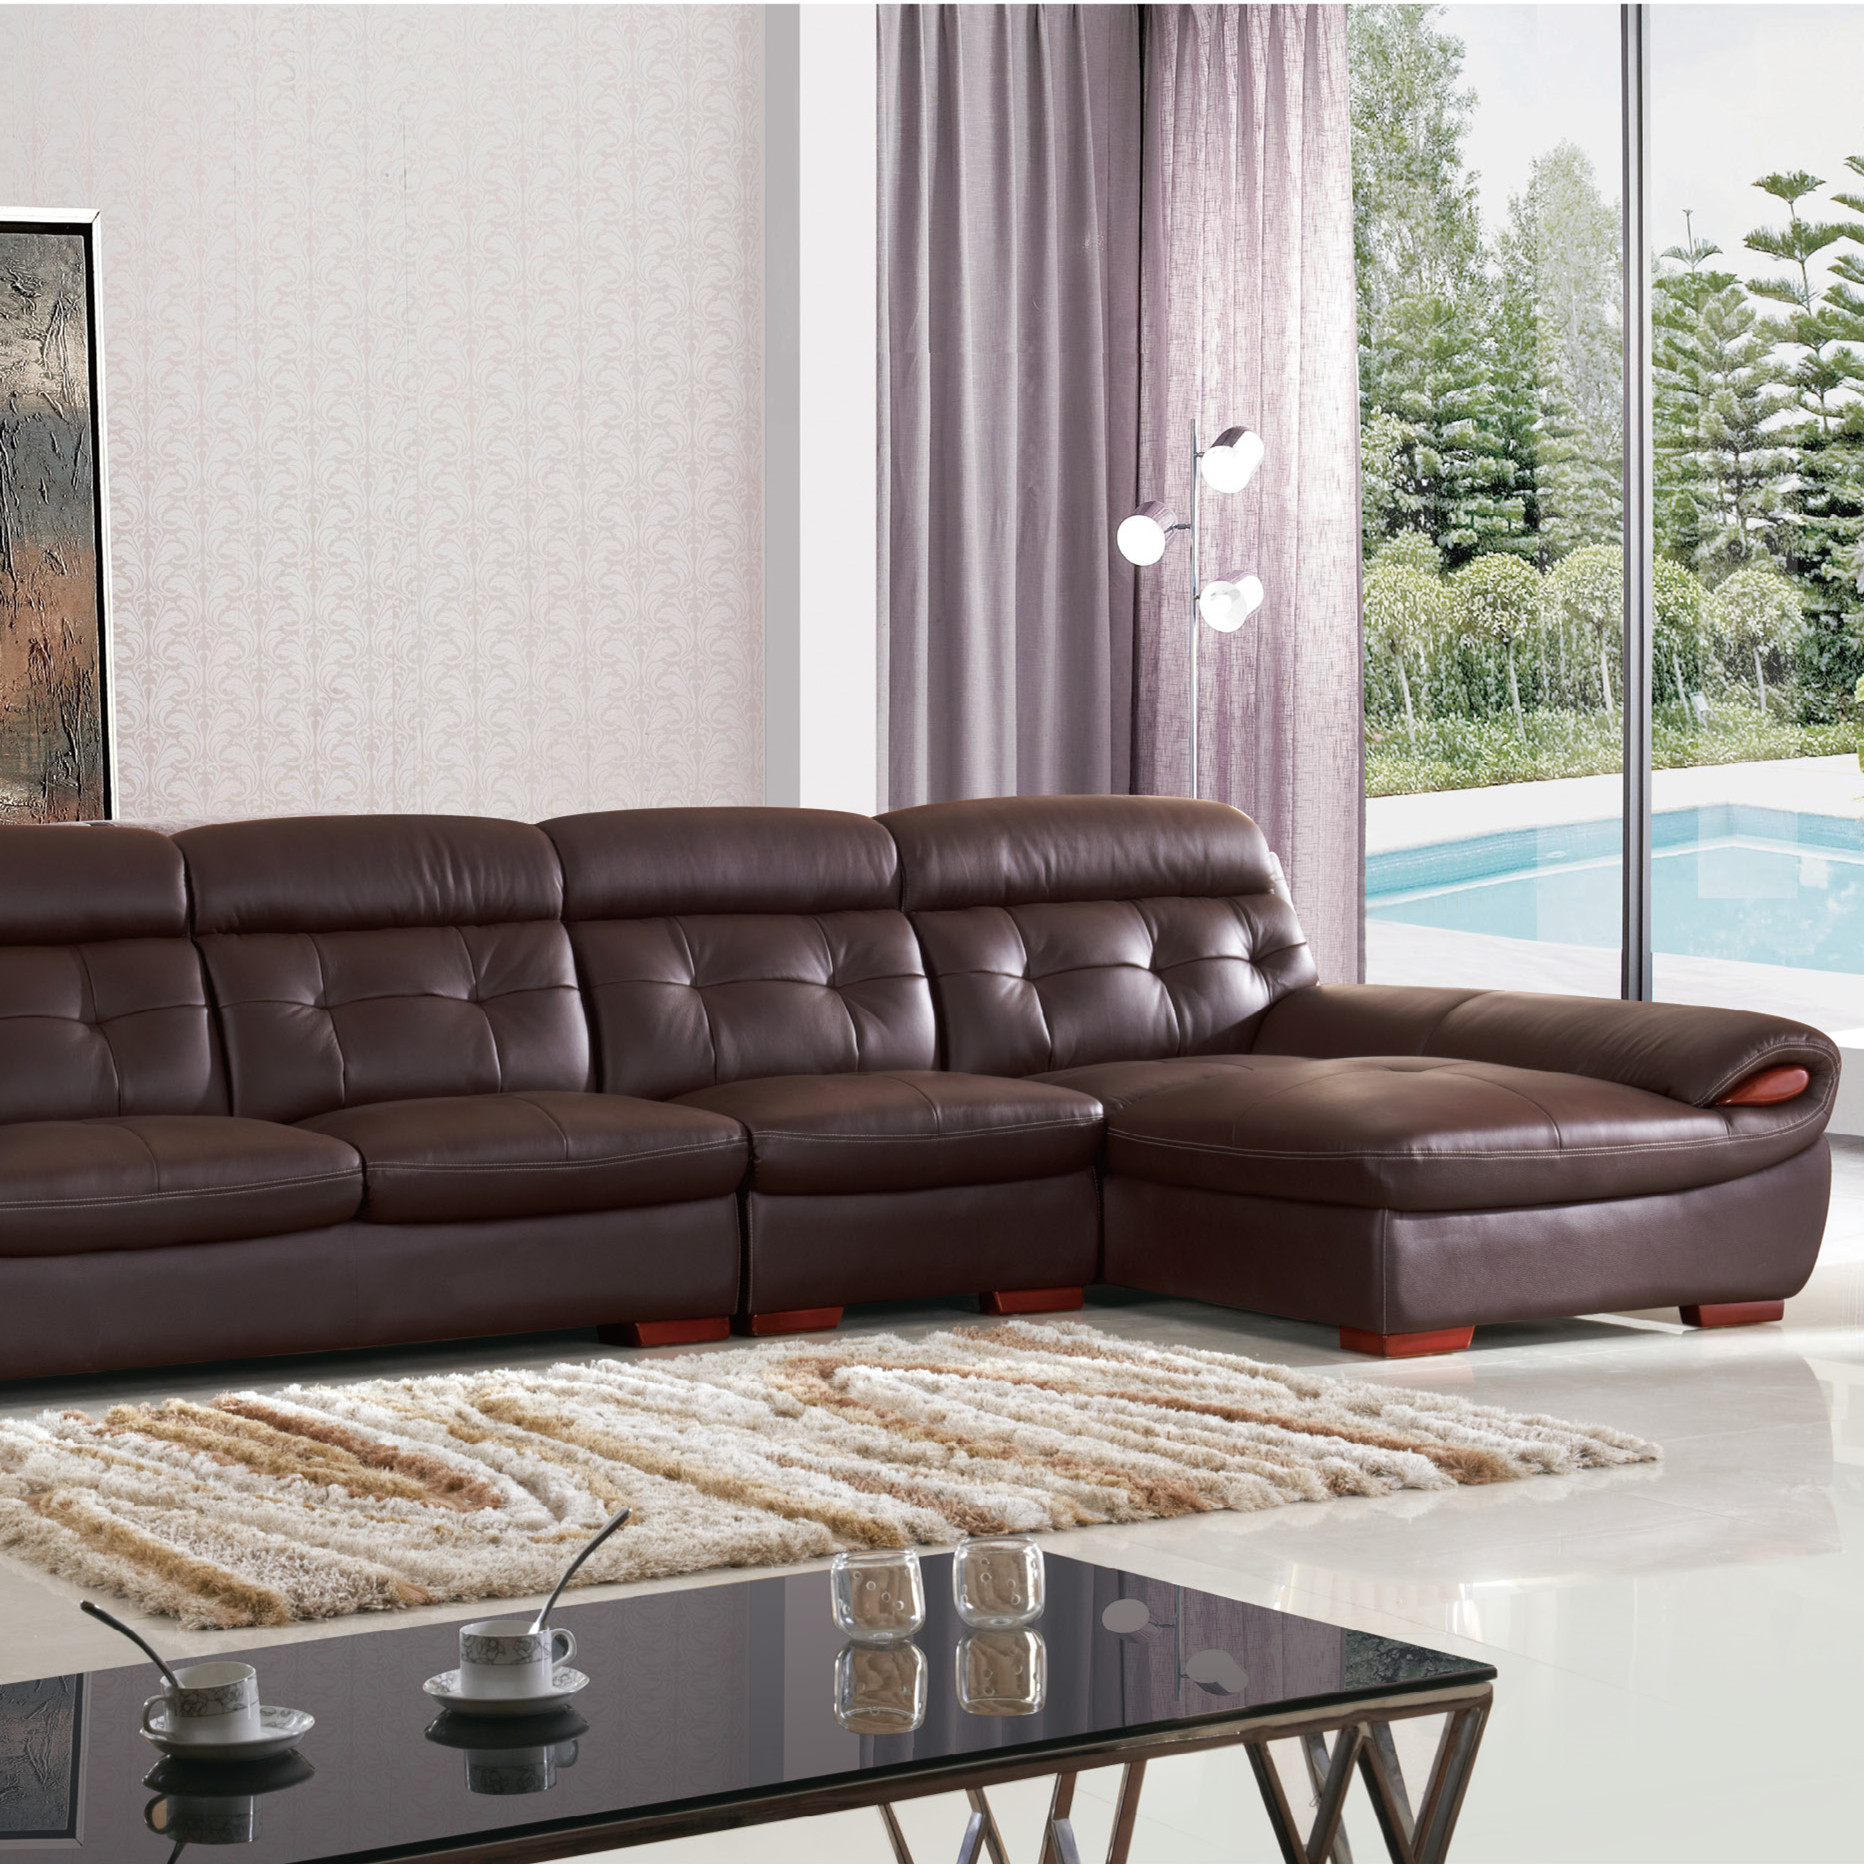 On sales modern furniture italian style sectional sofa set l shaped corner sofa 8817